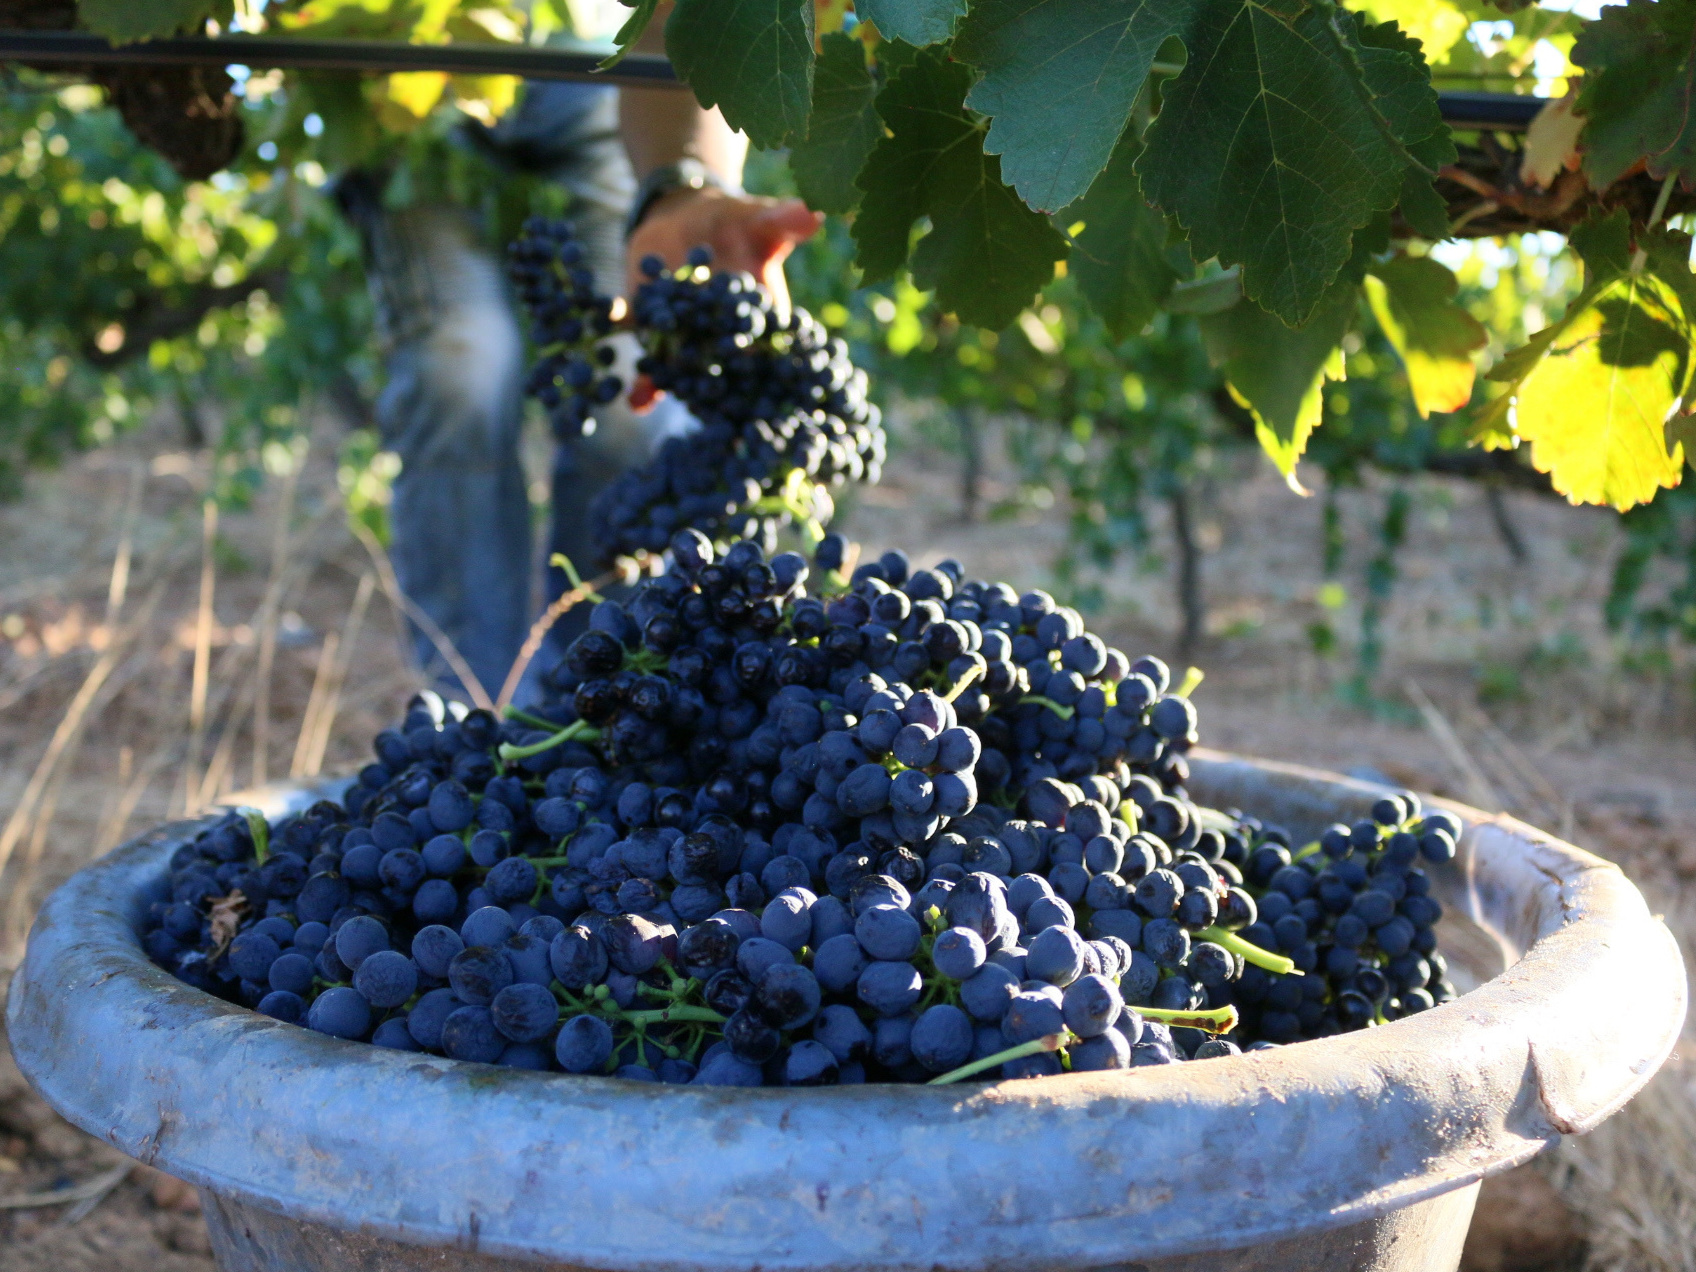 The grapes are all harvested using secateurs. Once a bucket is filled, it's poured into a truck. When the truck reaches capacity, it carries the grapes to the cellar.